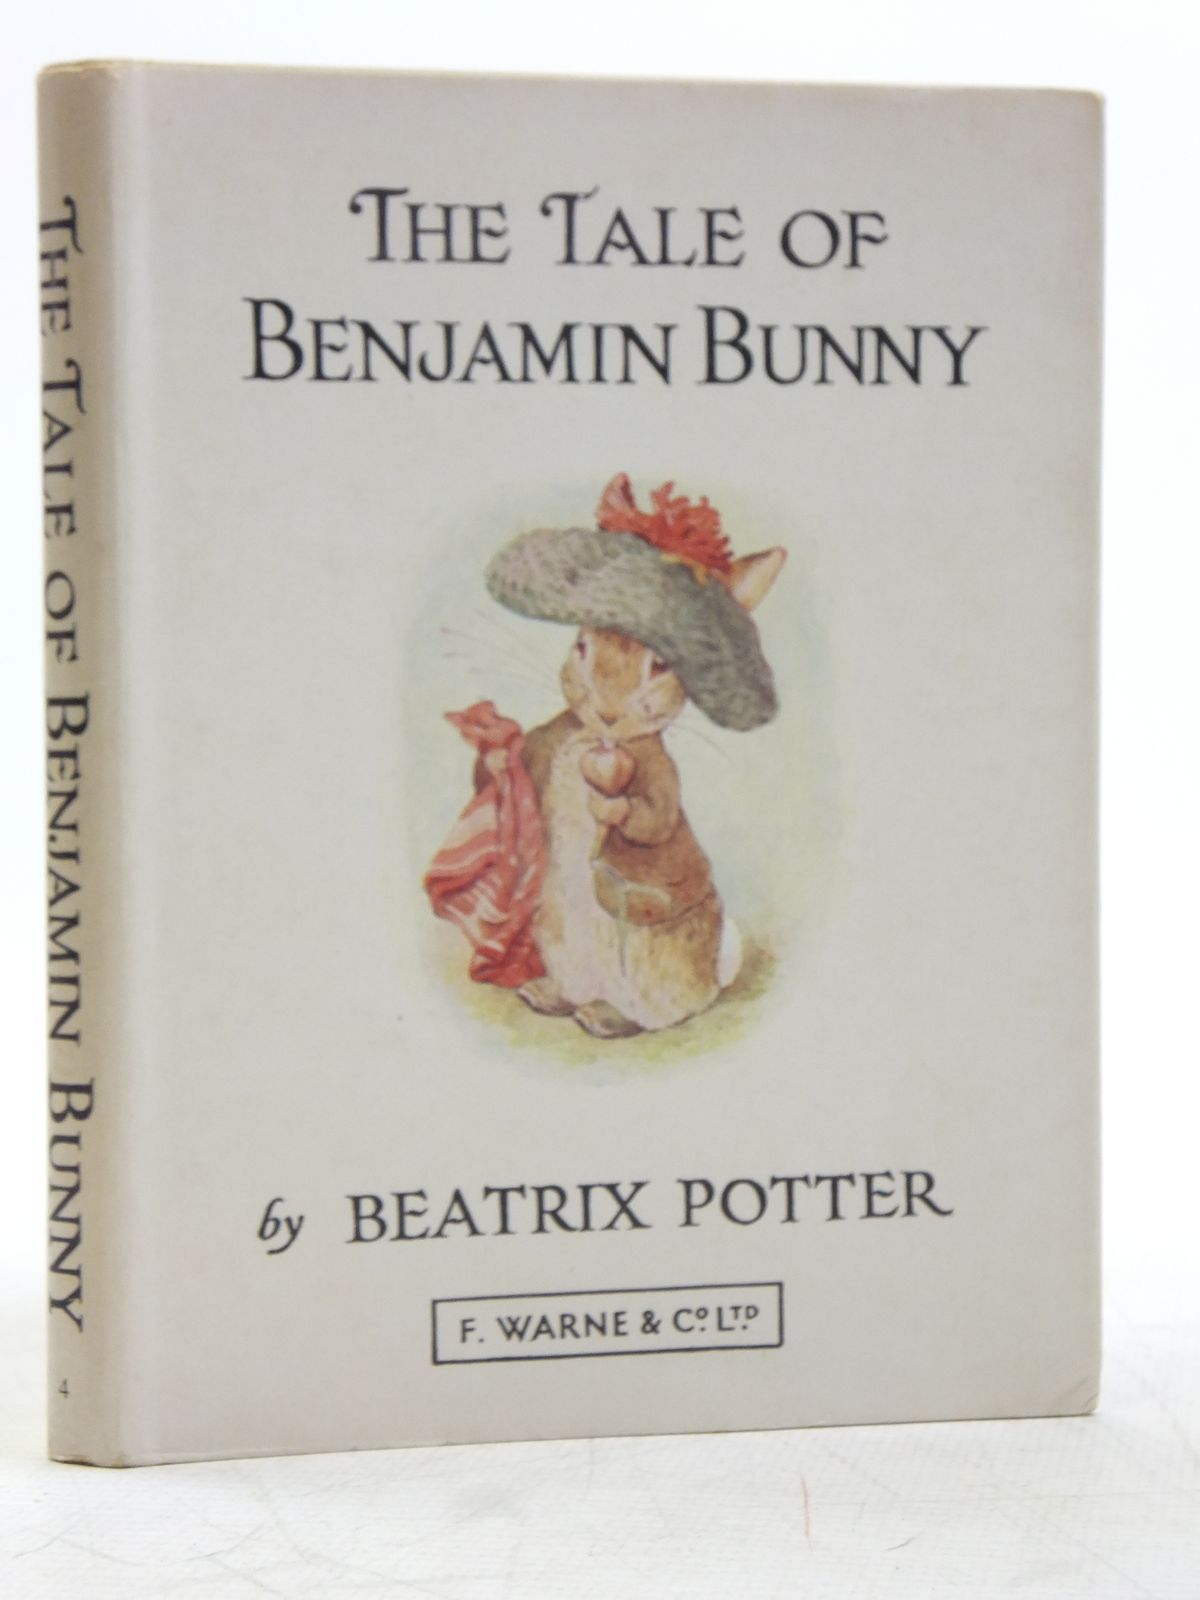 Photo of THE TALE OF BENJAMIN BUNNY written by Potter, Beatrix illustrated by Potter, Beatrix published by Frederick Warne & Co Ltd. (STOCK CODE: 2119305)  for sale by Stella & Rose's Books